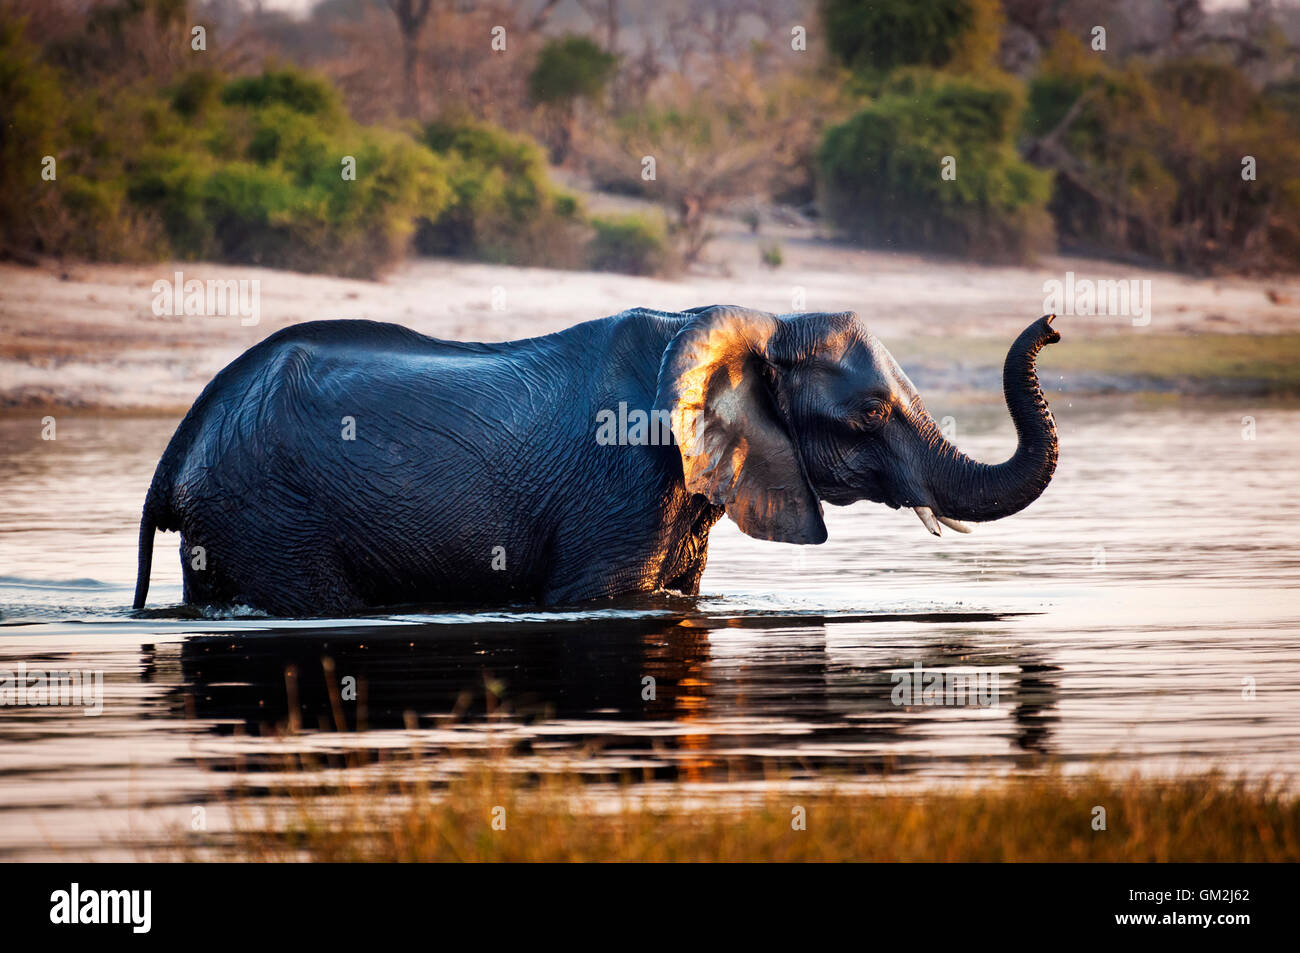 Elephant crossing the Chobe River, in the Chobe National Park, in Botswana, Africa; - Stock Image